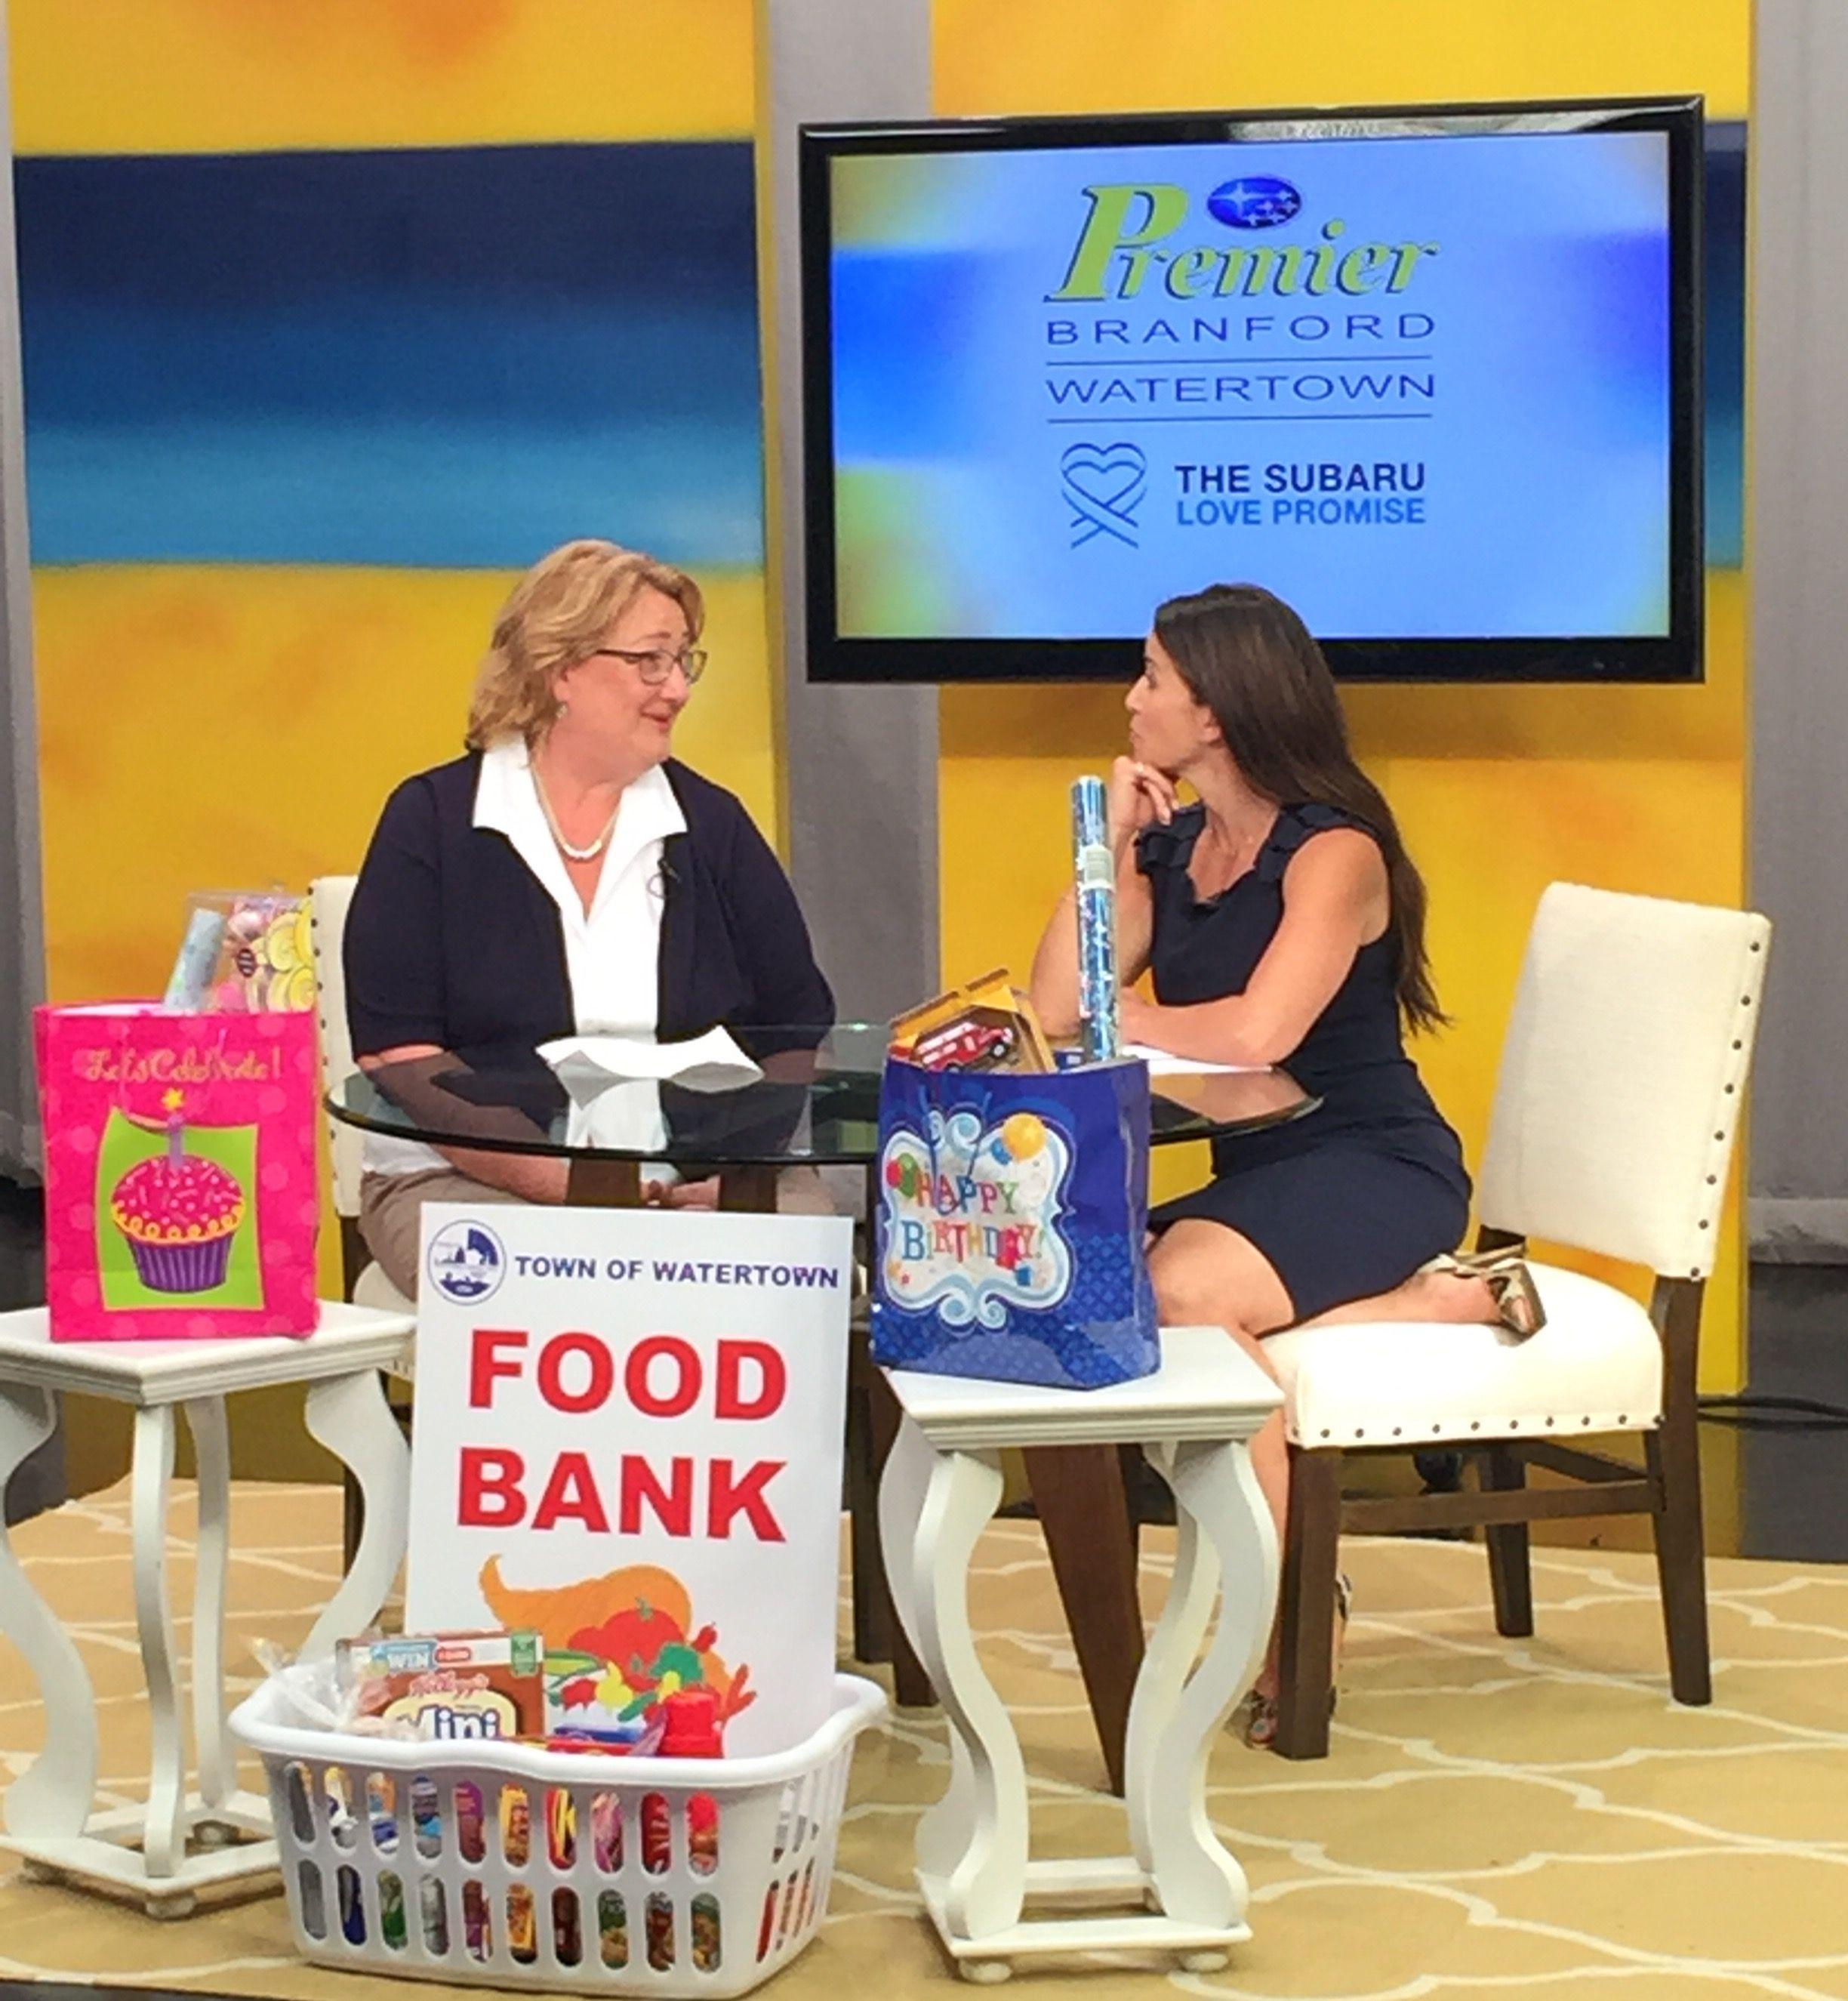 Charity of the month - Watertown Food Bank ! #ShareTheLove